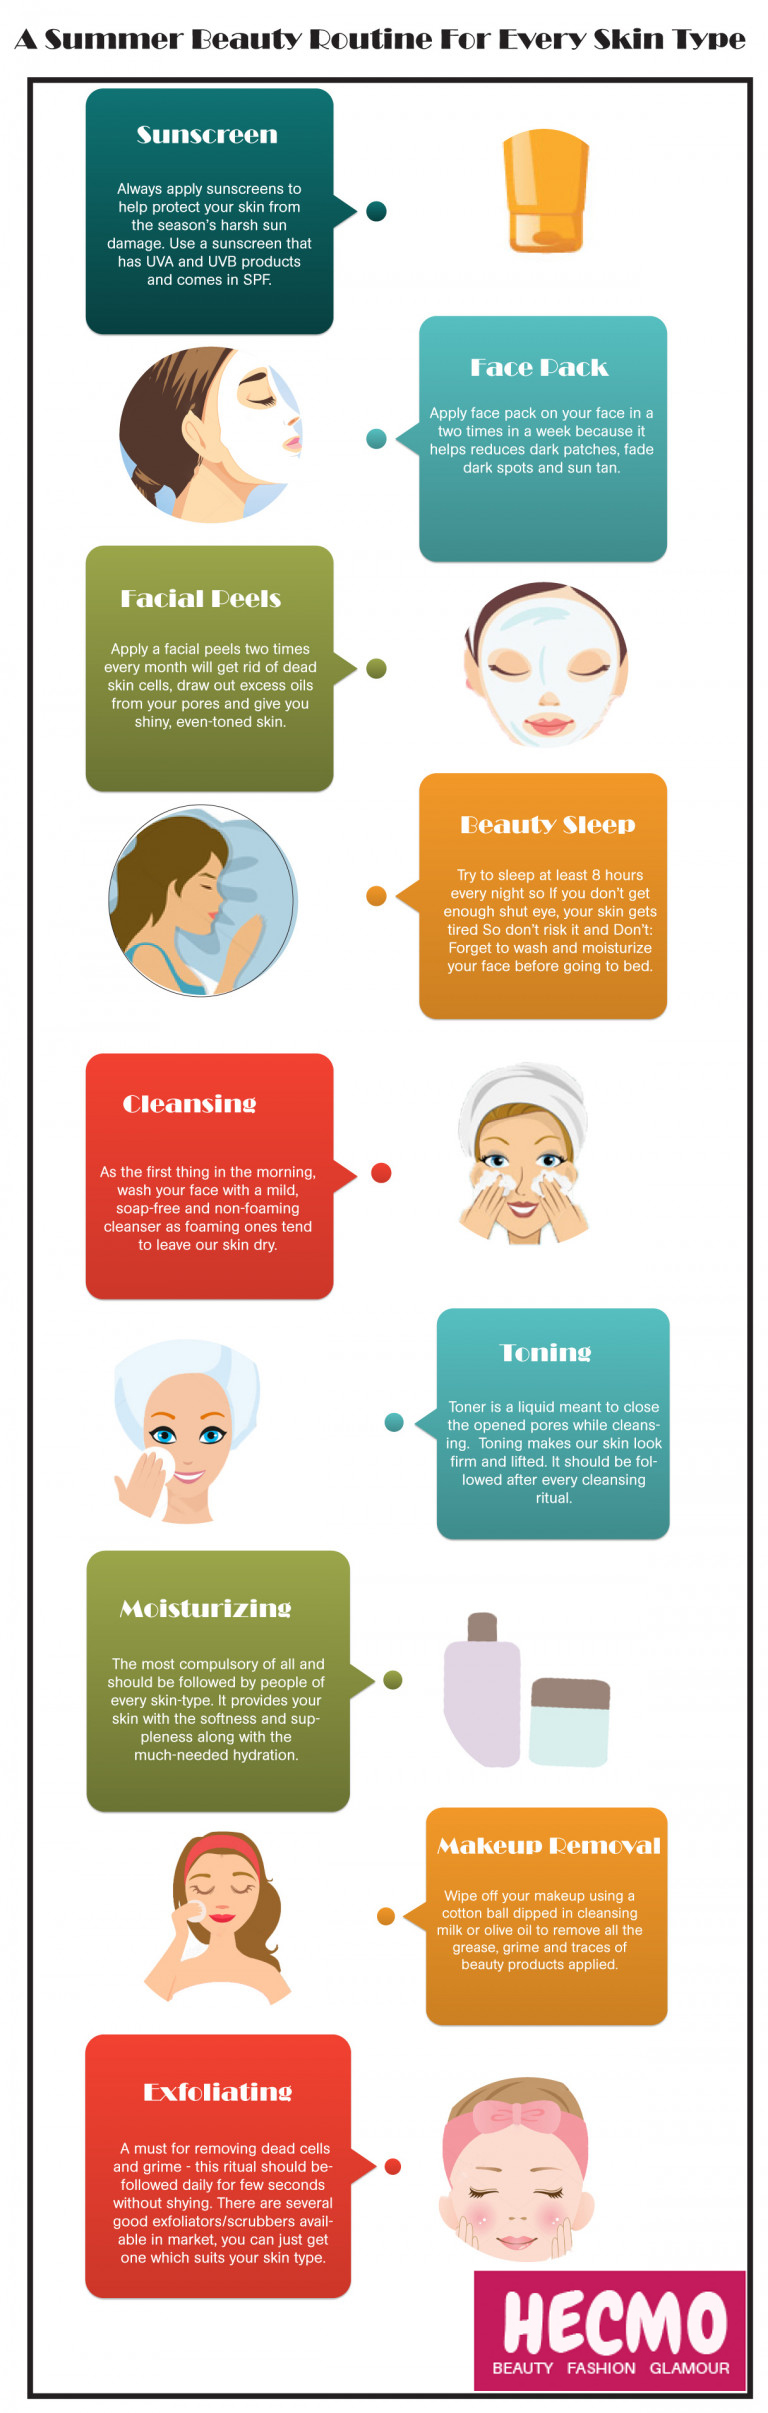 A-SUMMER-BEAUTY-ROUTINE-FOR-EVERY-SKIN-768x2413